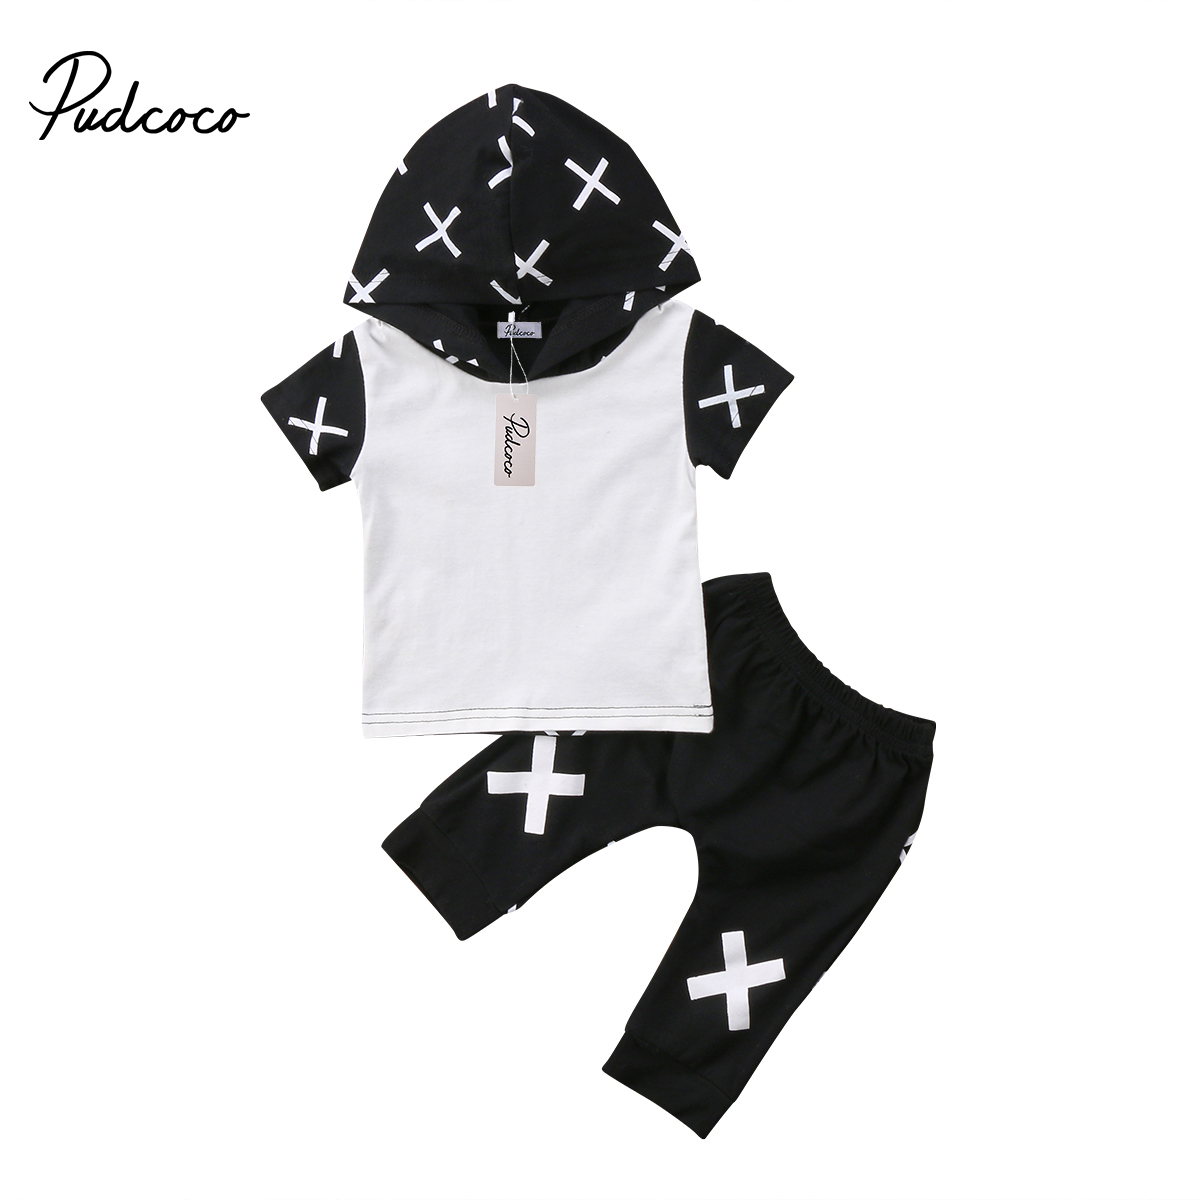 2018 Brand New 2pcs Toddler Infant Newborn Kid Baby Boy T-shirt Hooded Tops Shorts Pants Casual Summer Outfit Cotton Clothes Set newborn baby boy girl 5 pcs clothing set cotton cartoon monk tops pants bib hats infant clothes 0 3 months hight quality